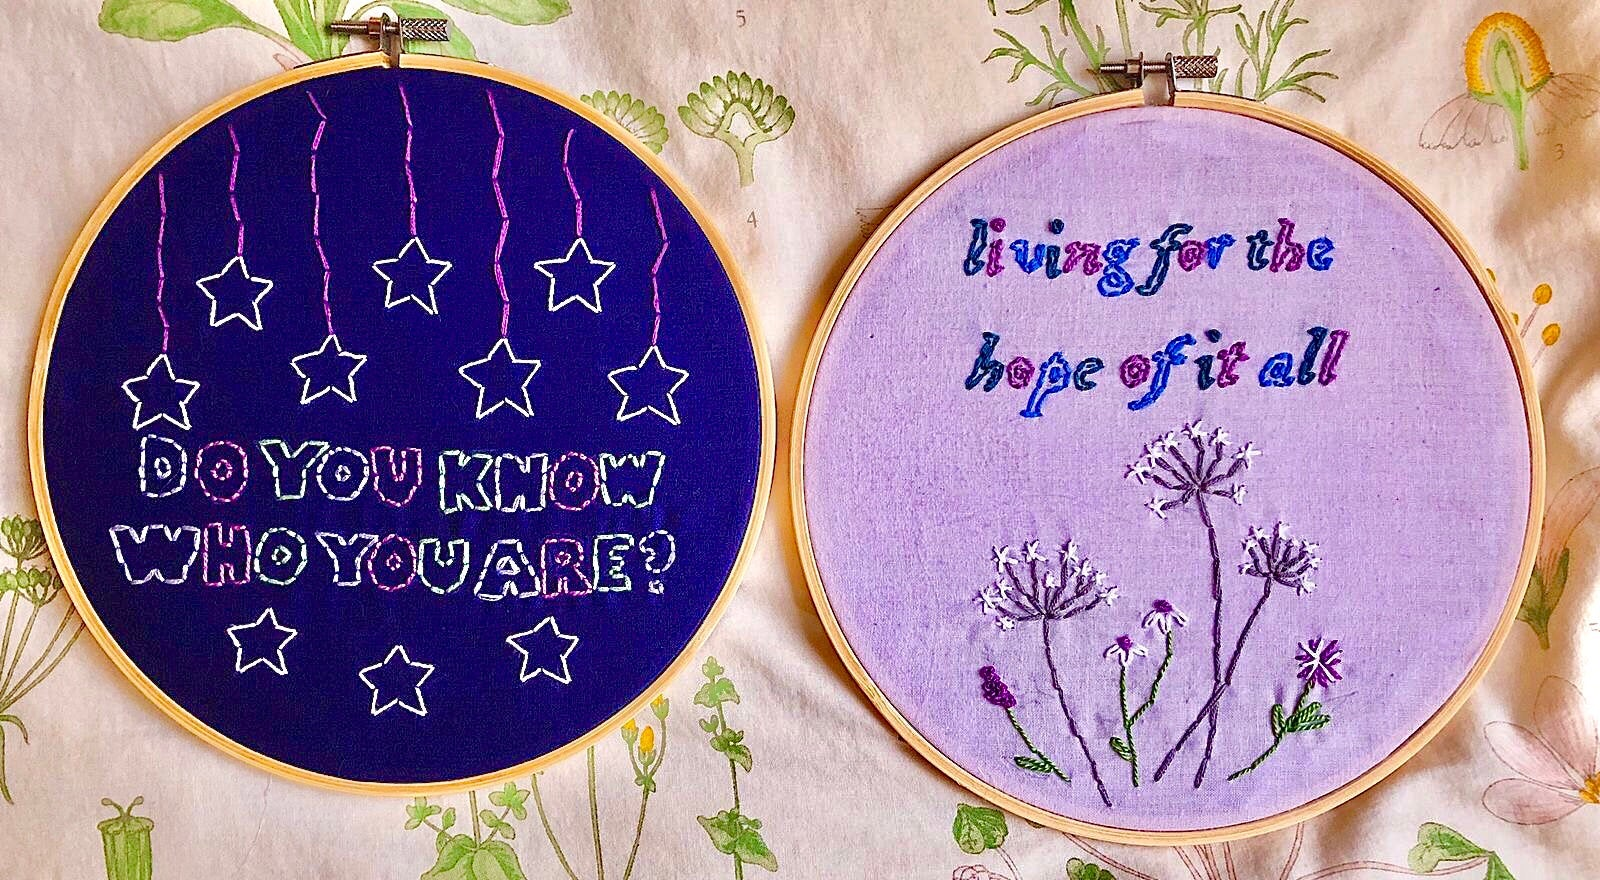 Photo of two embroidery wheels, one with lyrics from Taylor Swift and one with lyrics from Harry Styles.